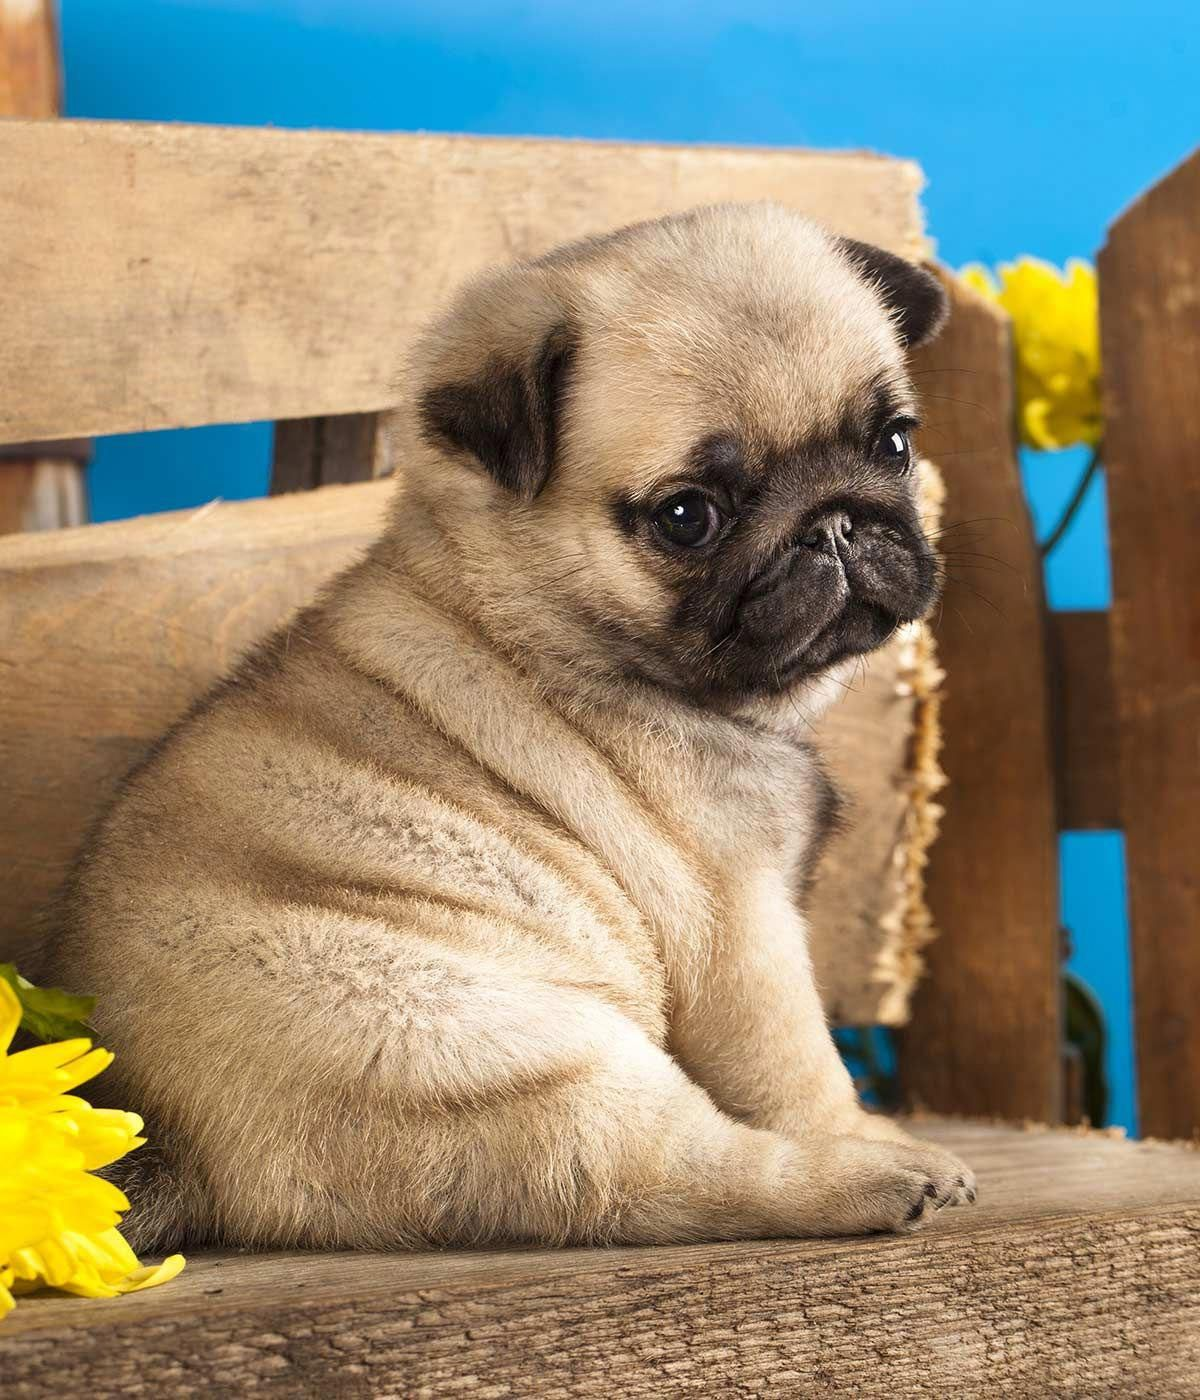 Best Food For Pug Puppies Tasty Healthy Choices Baby Pugs